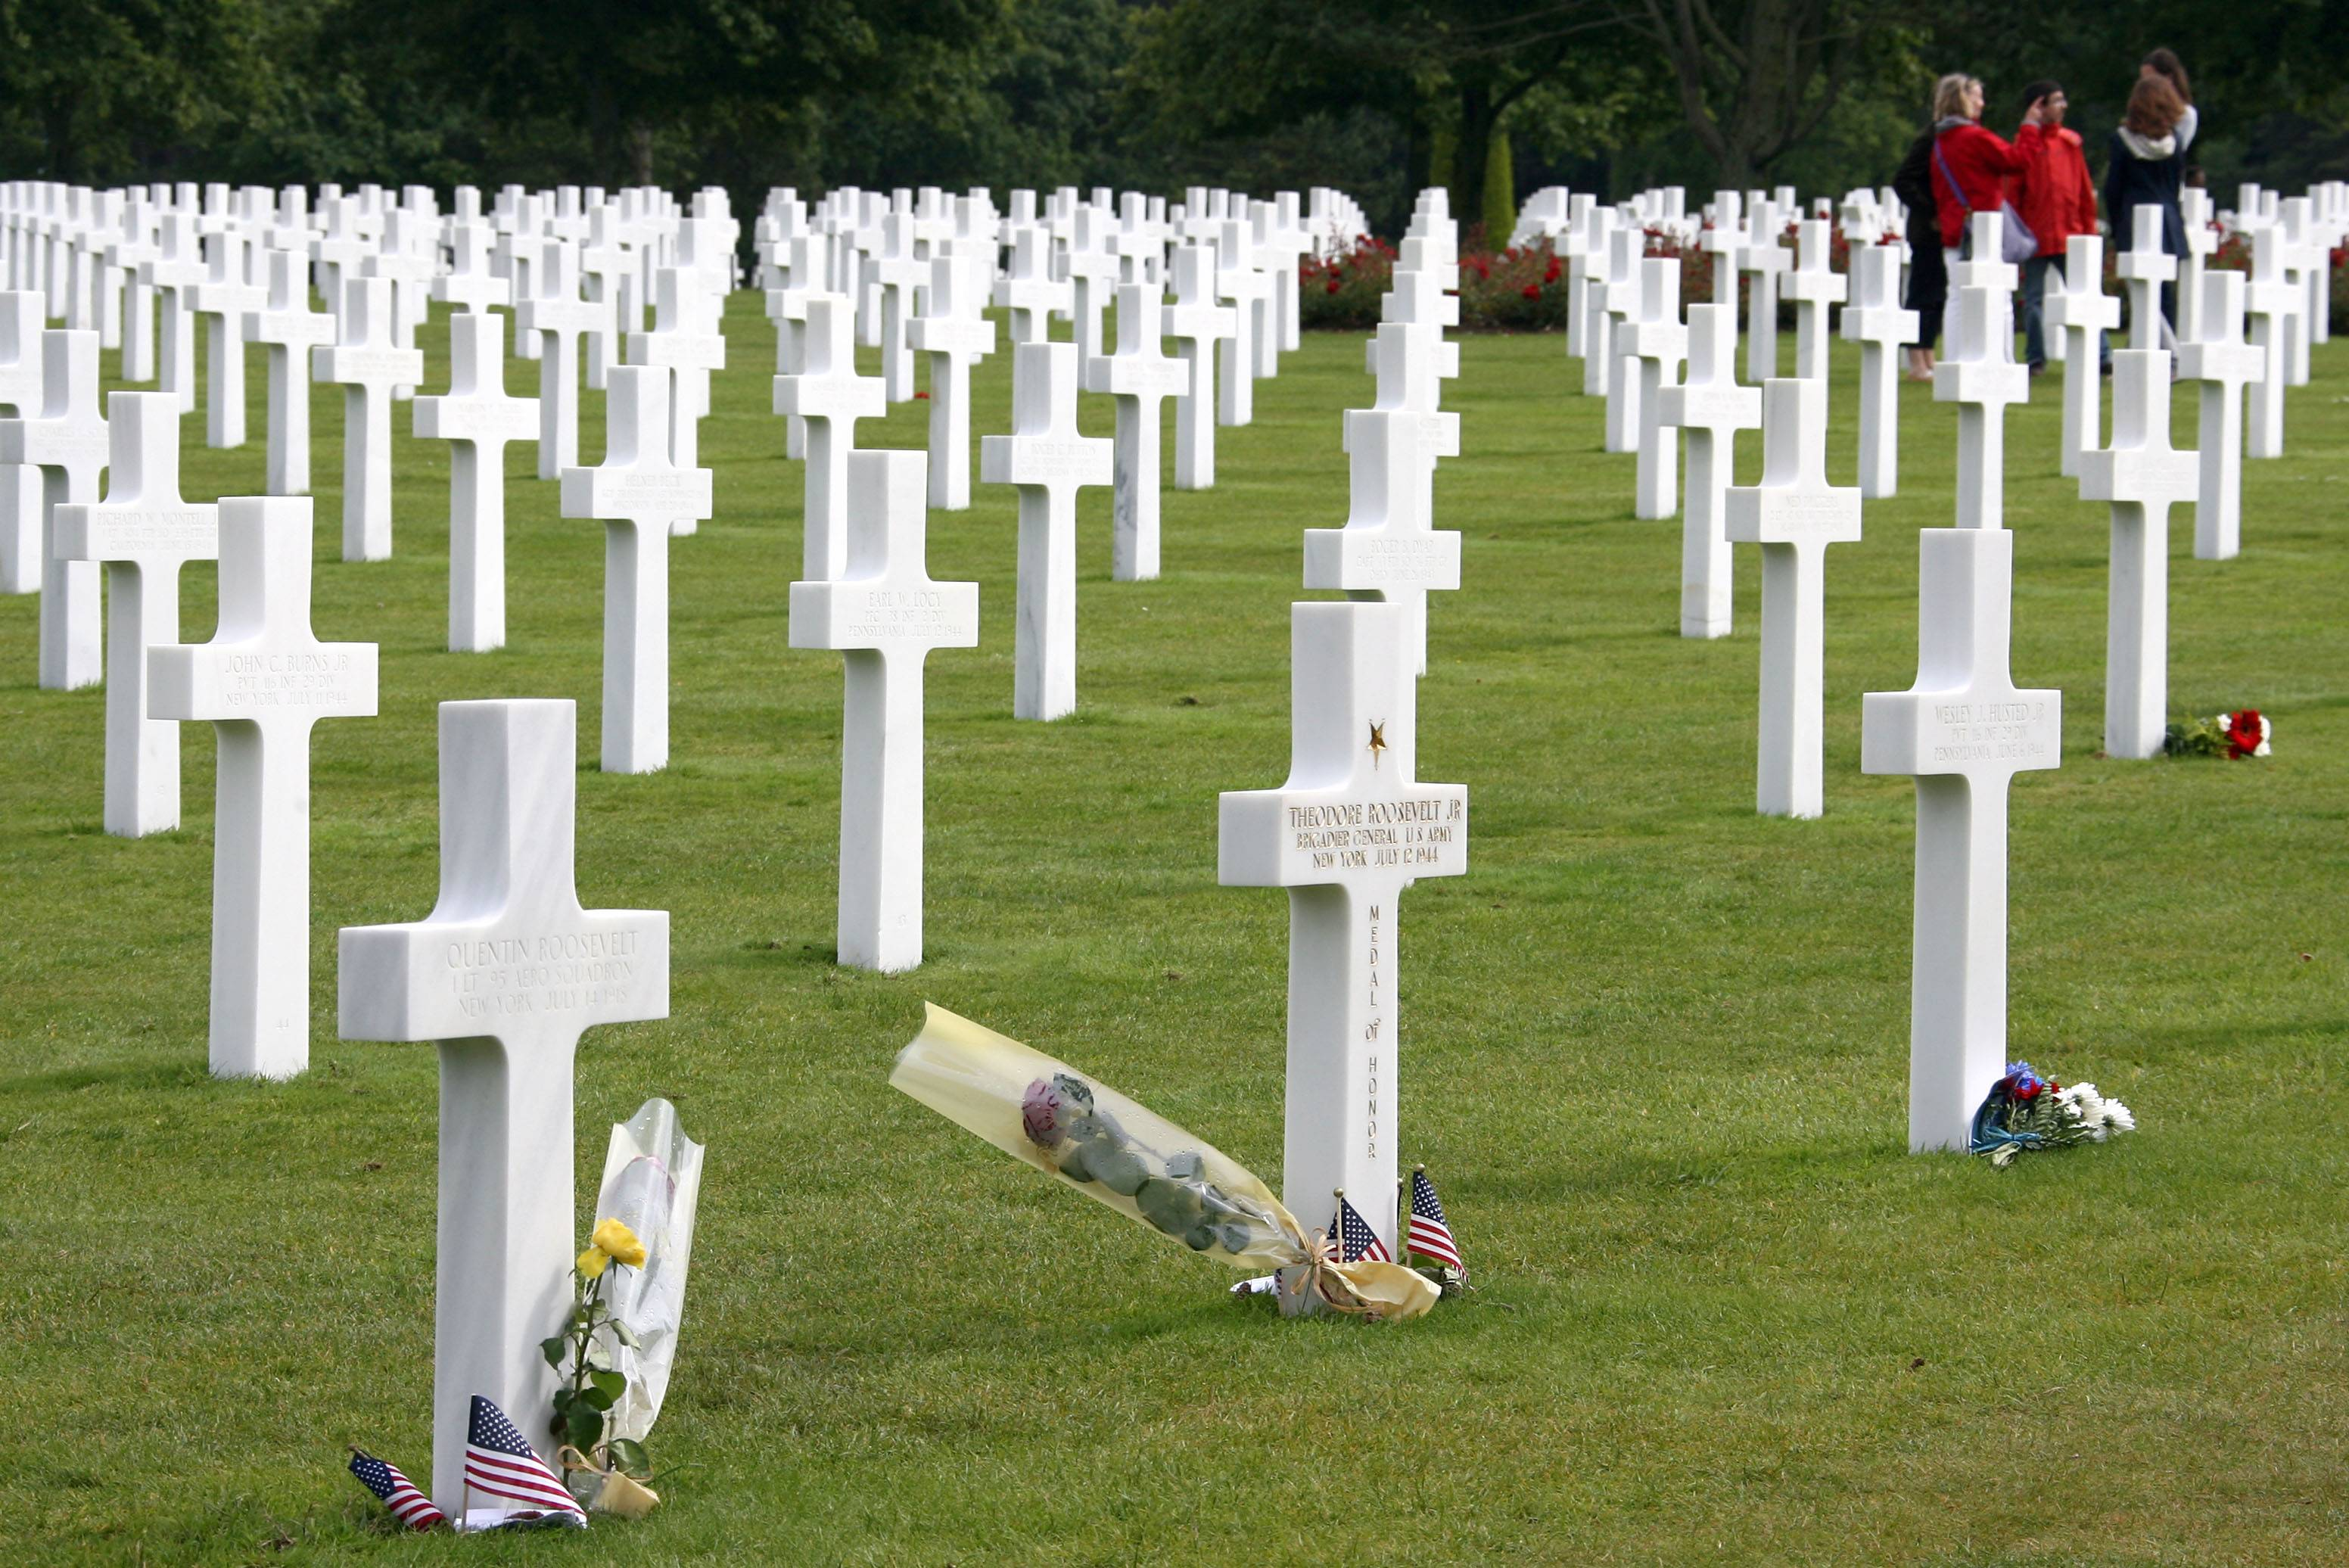 Tourists visit the U.S. military cemetery in Colleville sur Mer, western France, for the D-Day Anniversary in 2011. This year is the 70th anniversary of D-Day, where Allied forces landed in Normandy on June 6, 1944 during World War II.